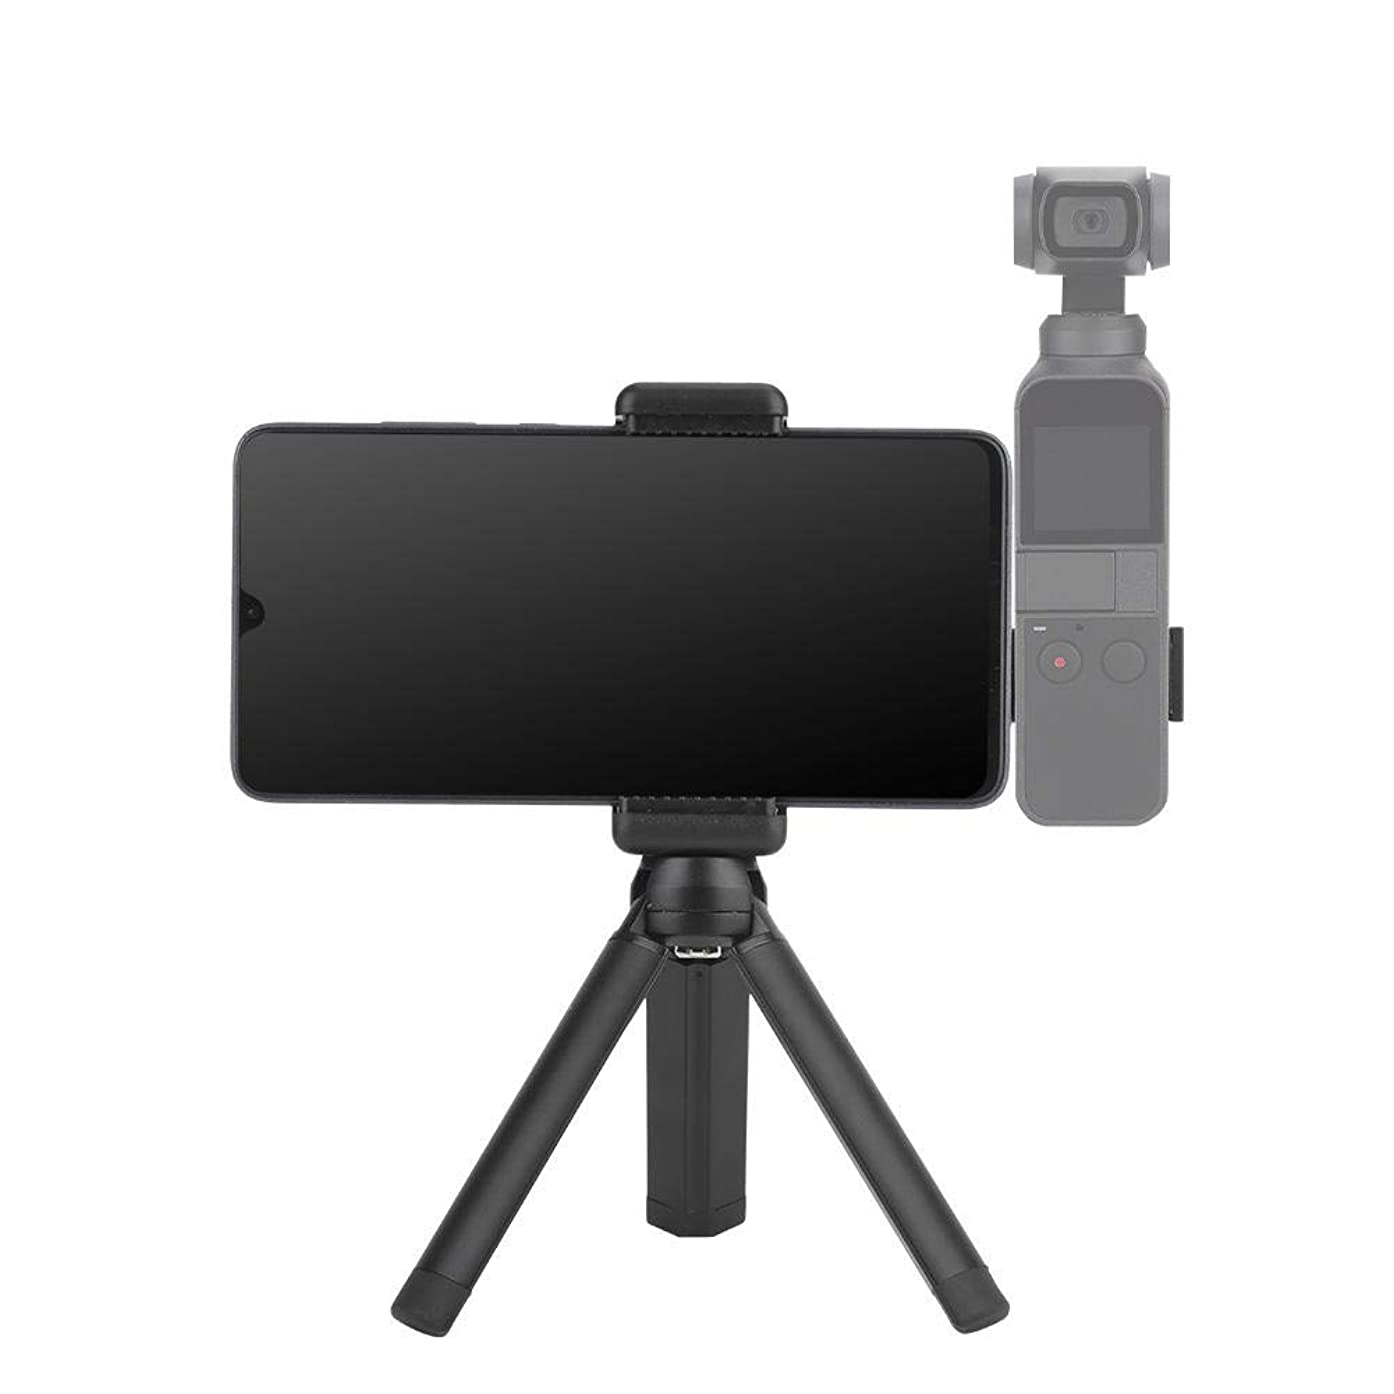 Camera Tripod, Portable Metal Tripod of for OSMO Pocket Compaitble with Mobile Phone Width of 6-10cm